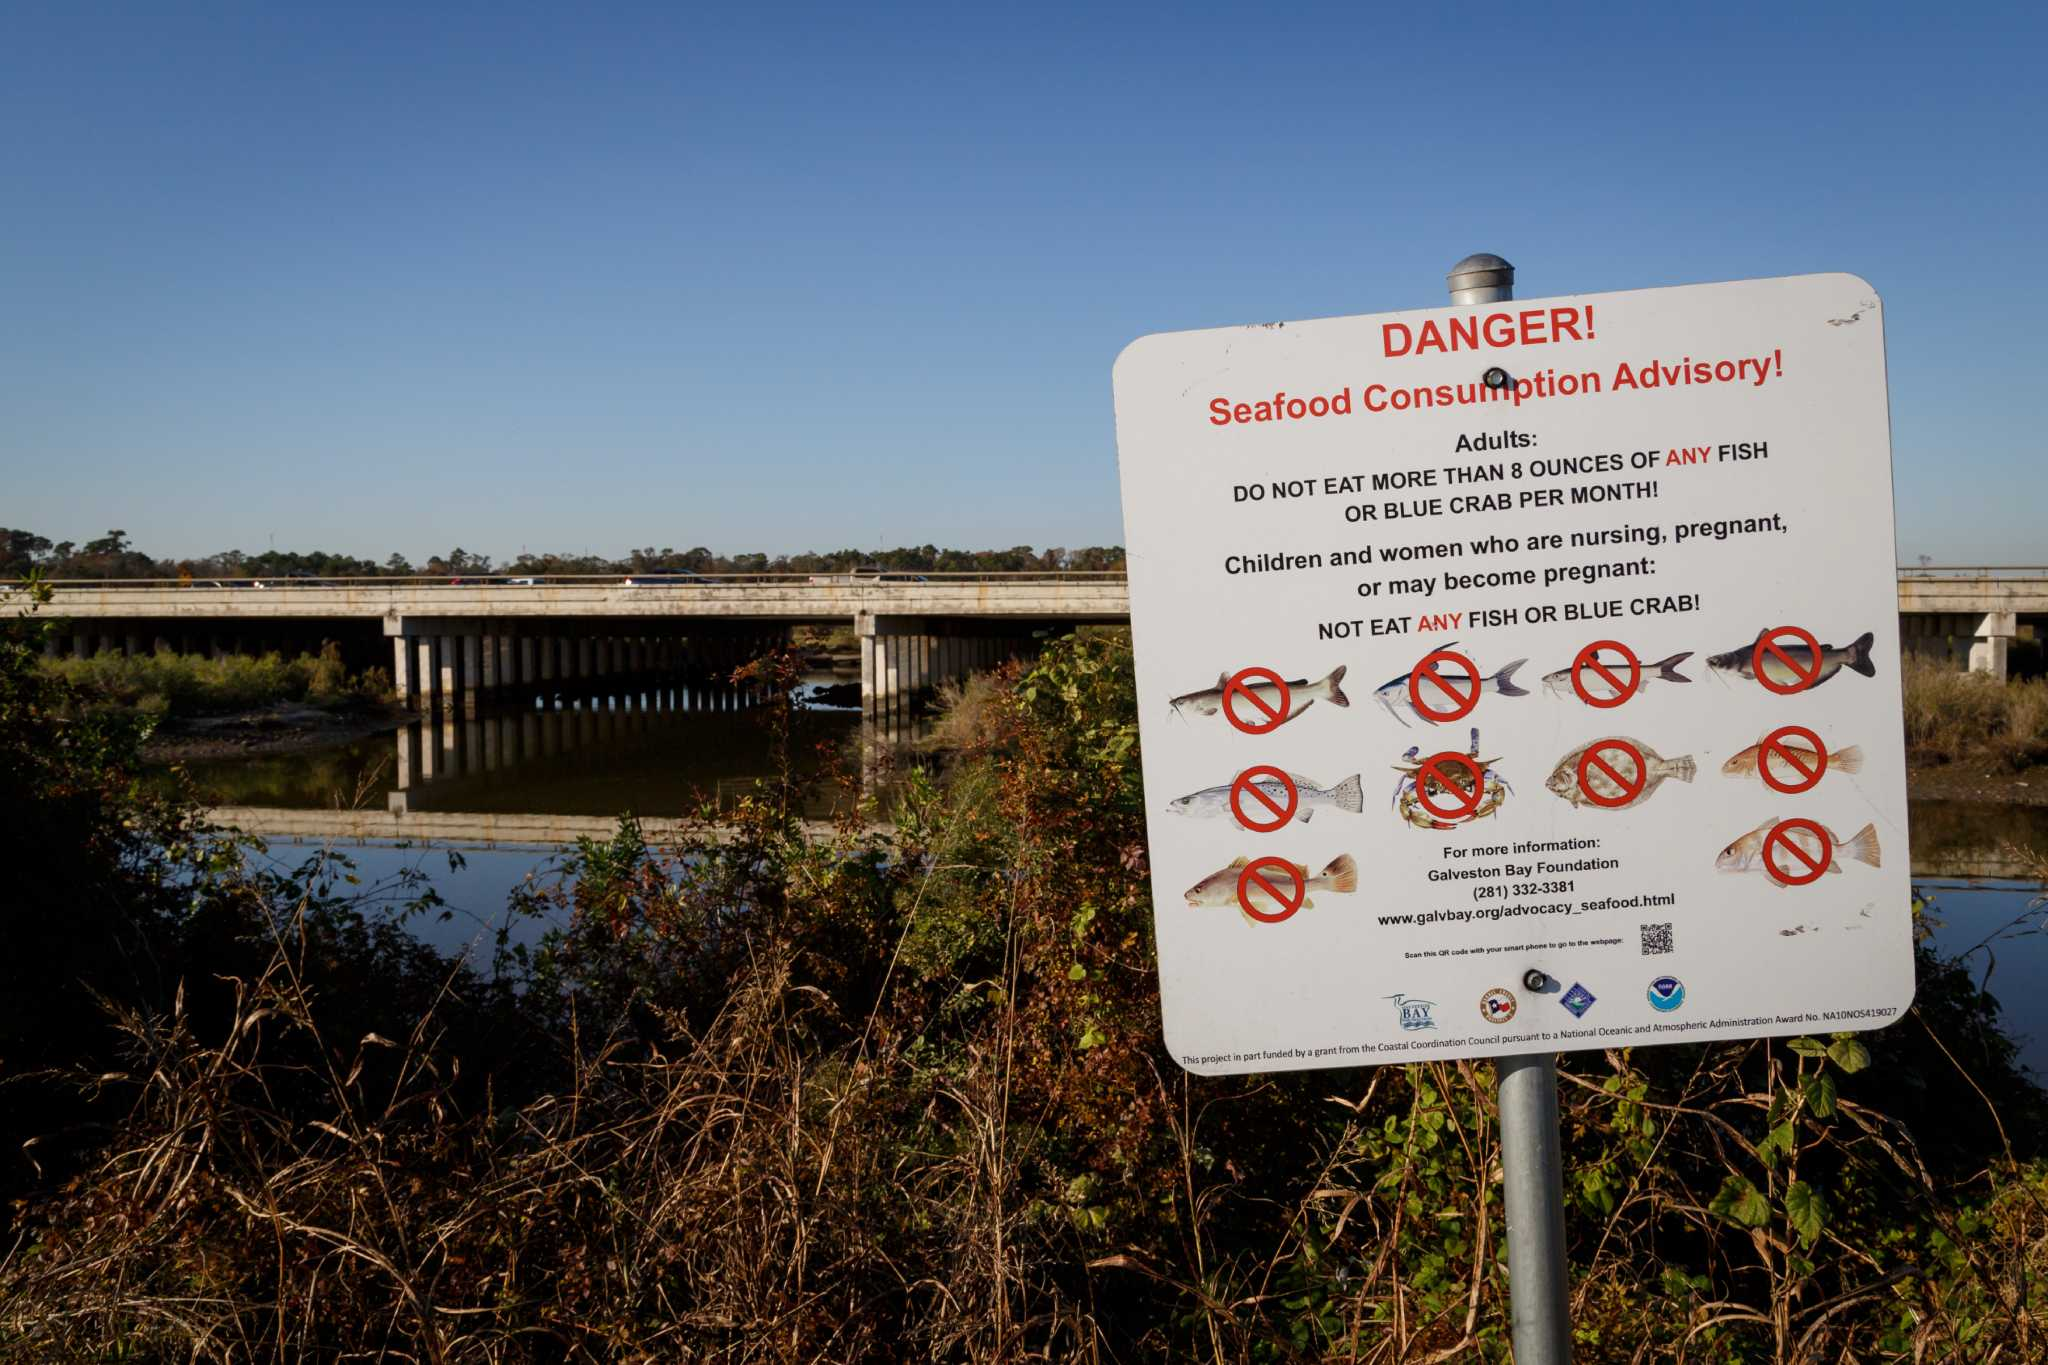 epa superfund sites essay A 2014 epa climate report warned that superfund site cleanup and monitoring processes needed updates to prepare for.